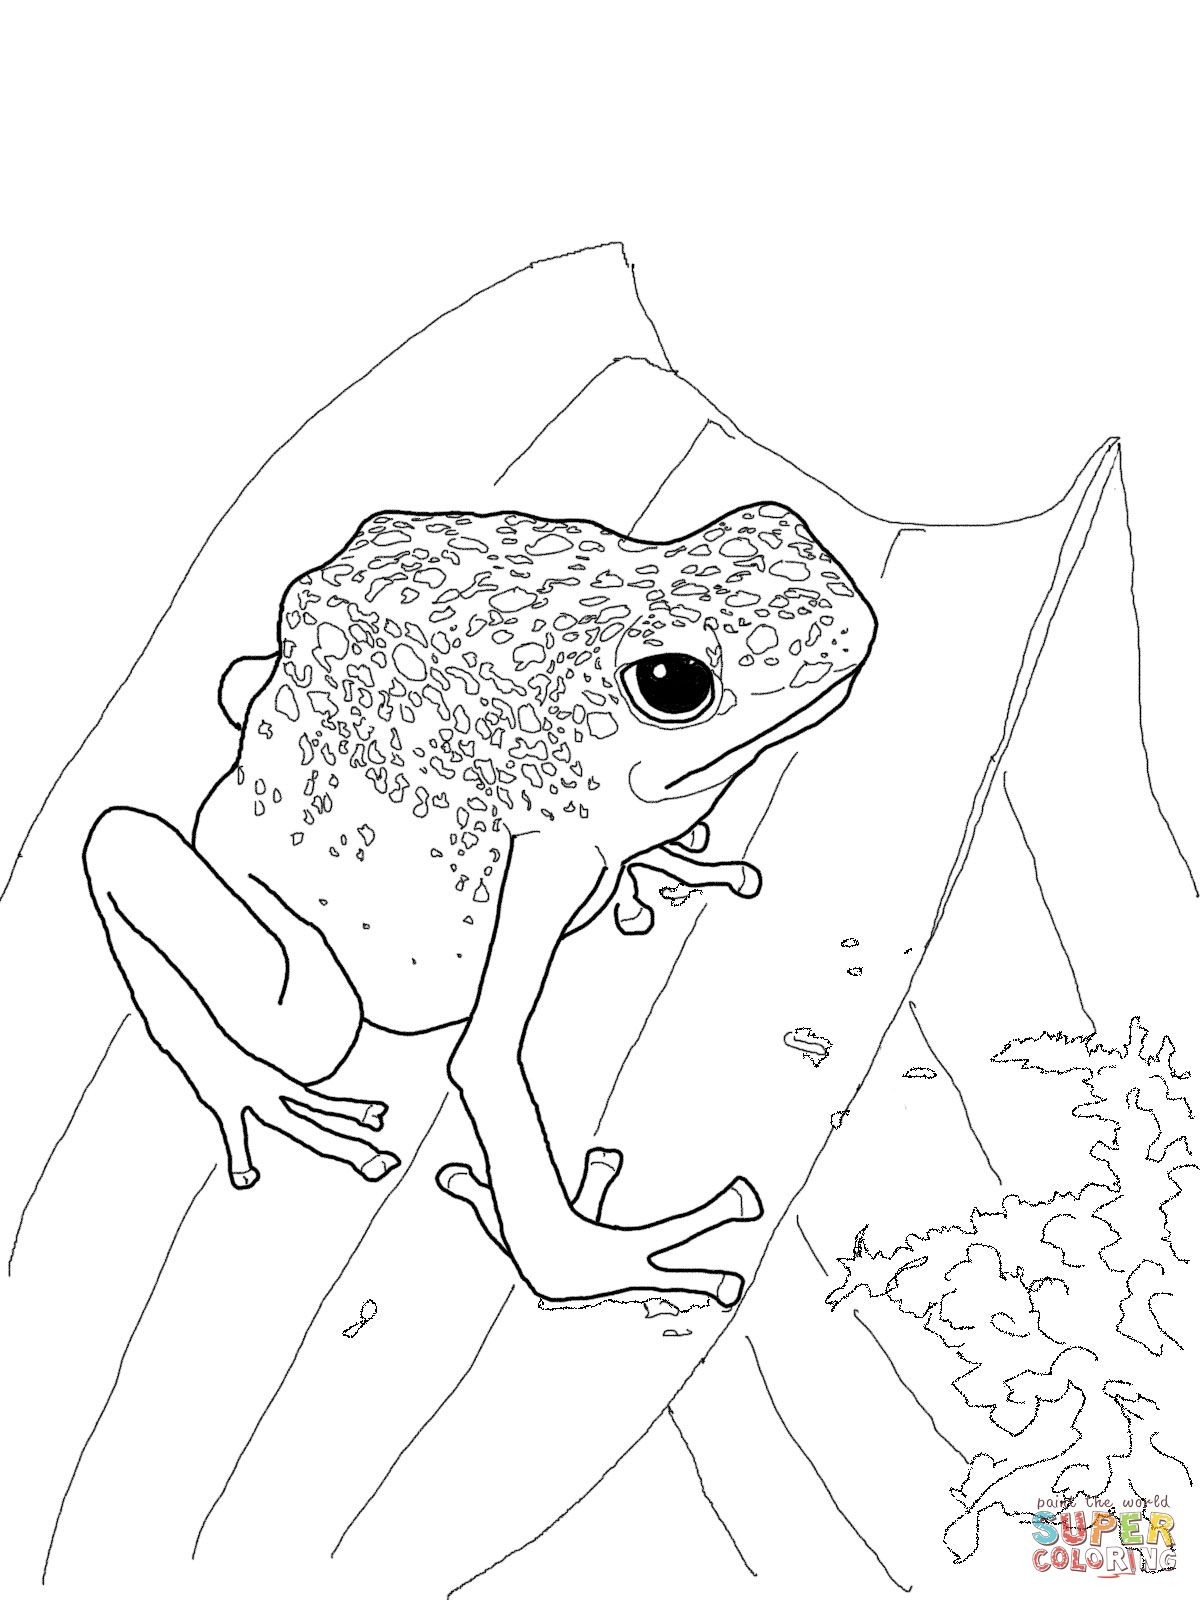 Pin By Sherry Stephan On Animal Illustrations Black White